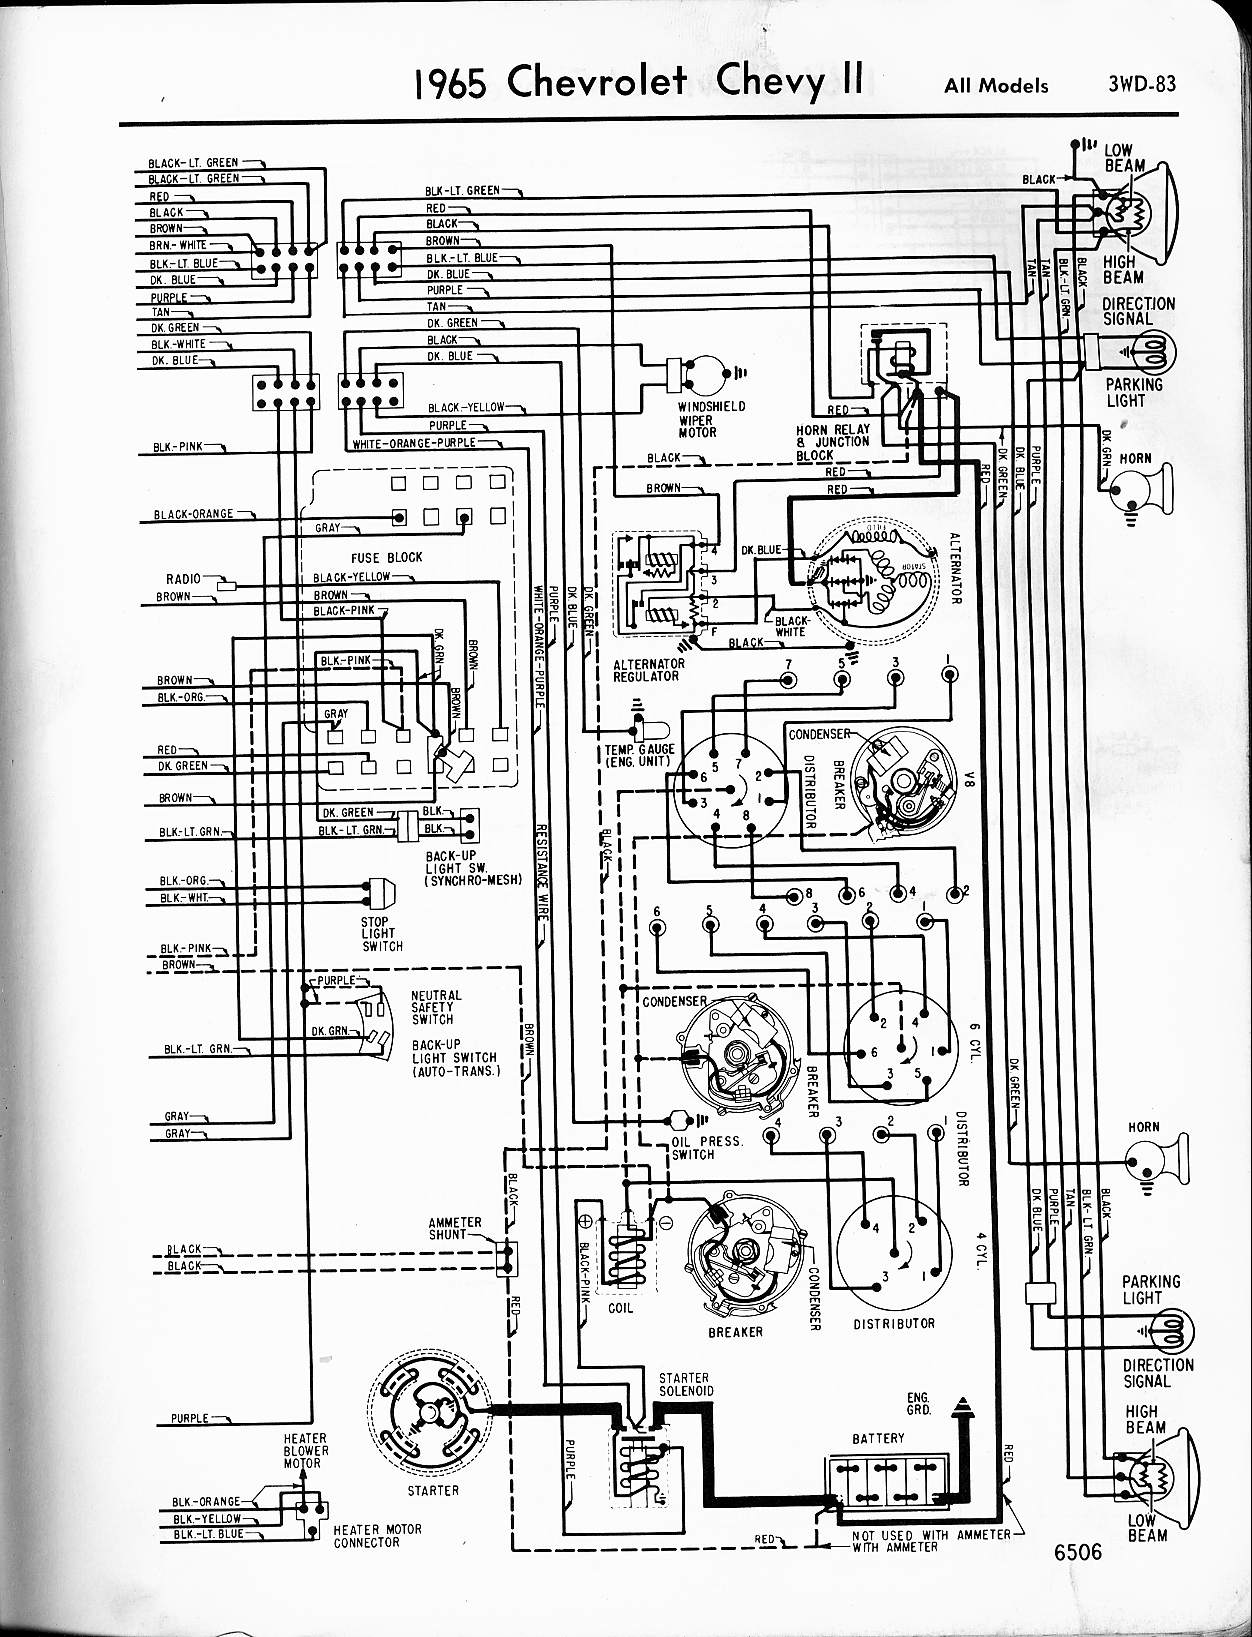 MWireChev65_3WD 083 chevy diagrams 1965 chevy wiring diagram at soozxer.org